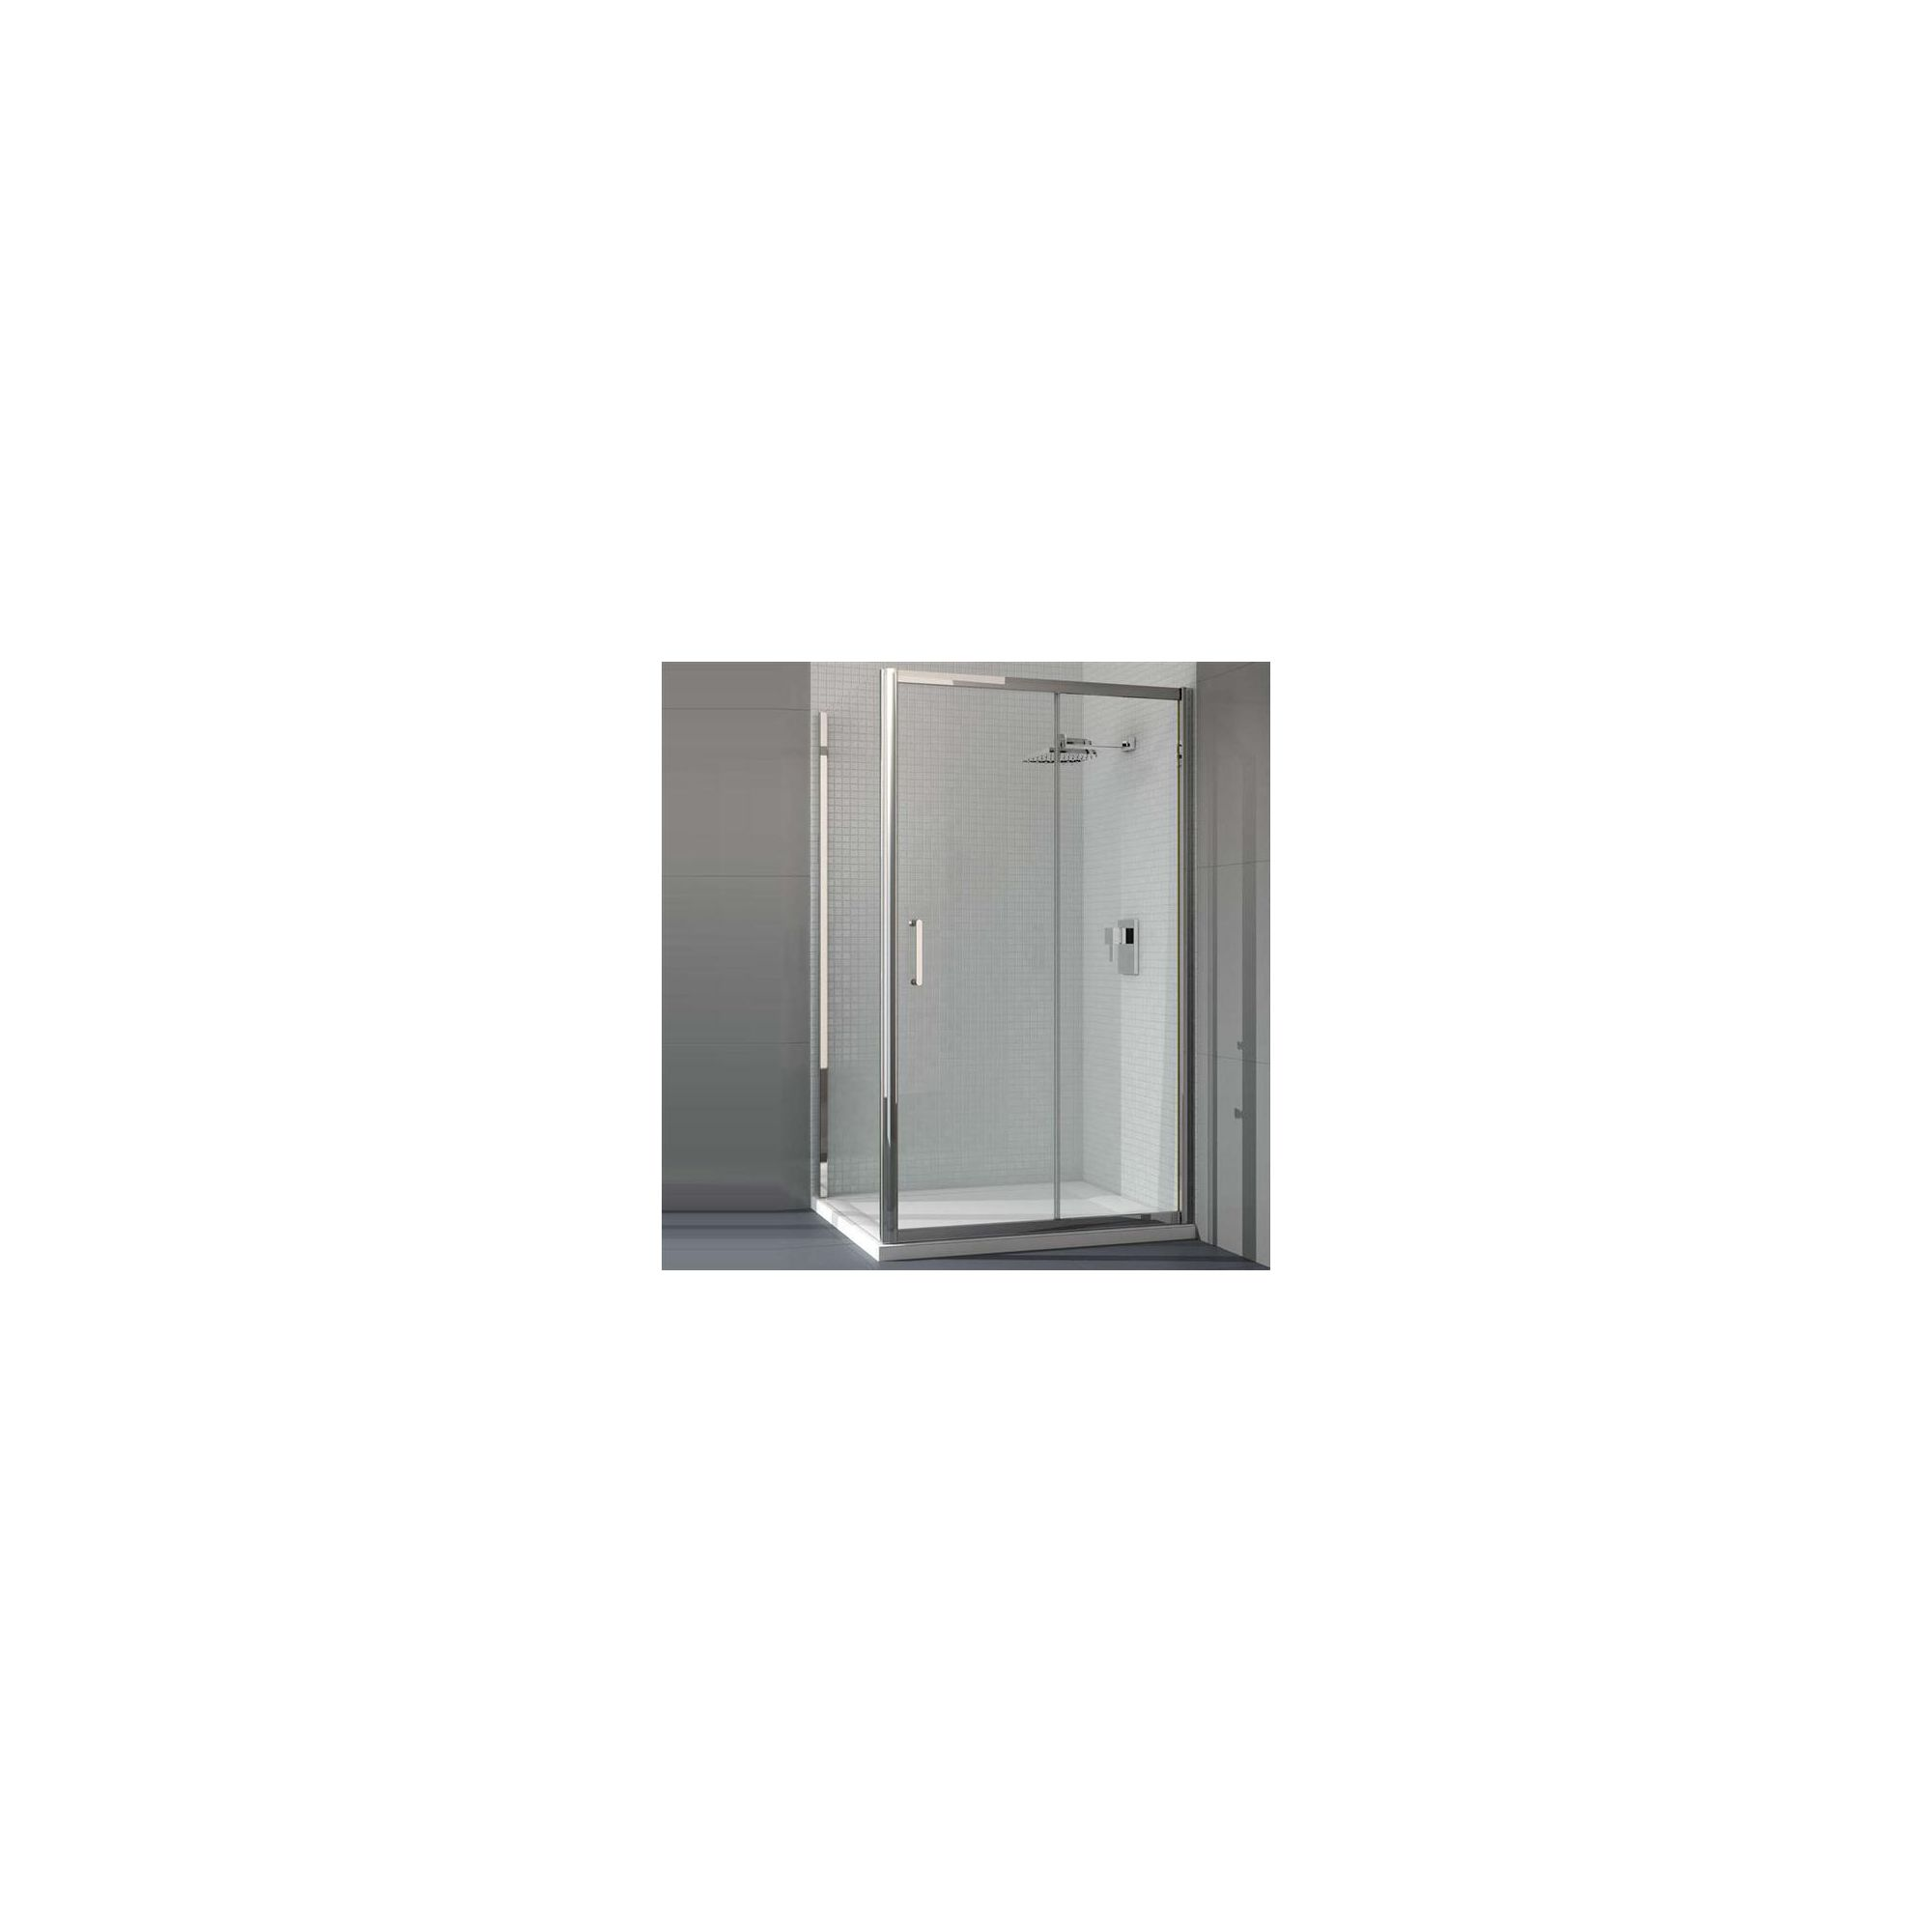 Merlyn Vivid Six Sliding Door Shower Enclosure, 1200mm x 800mm, Low Profile Tray, 6mm Glass at Tesco Direct